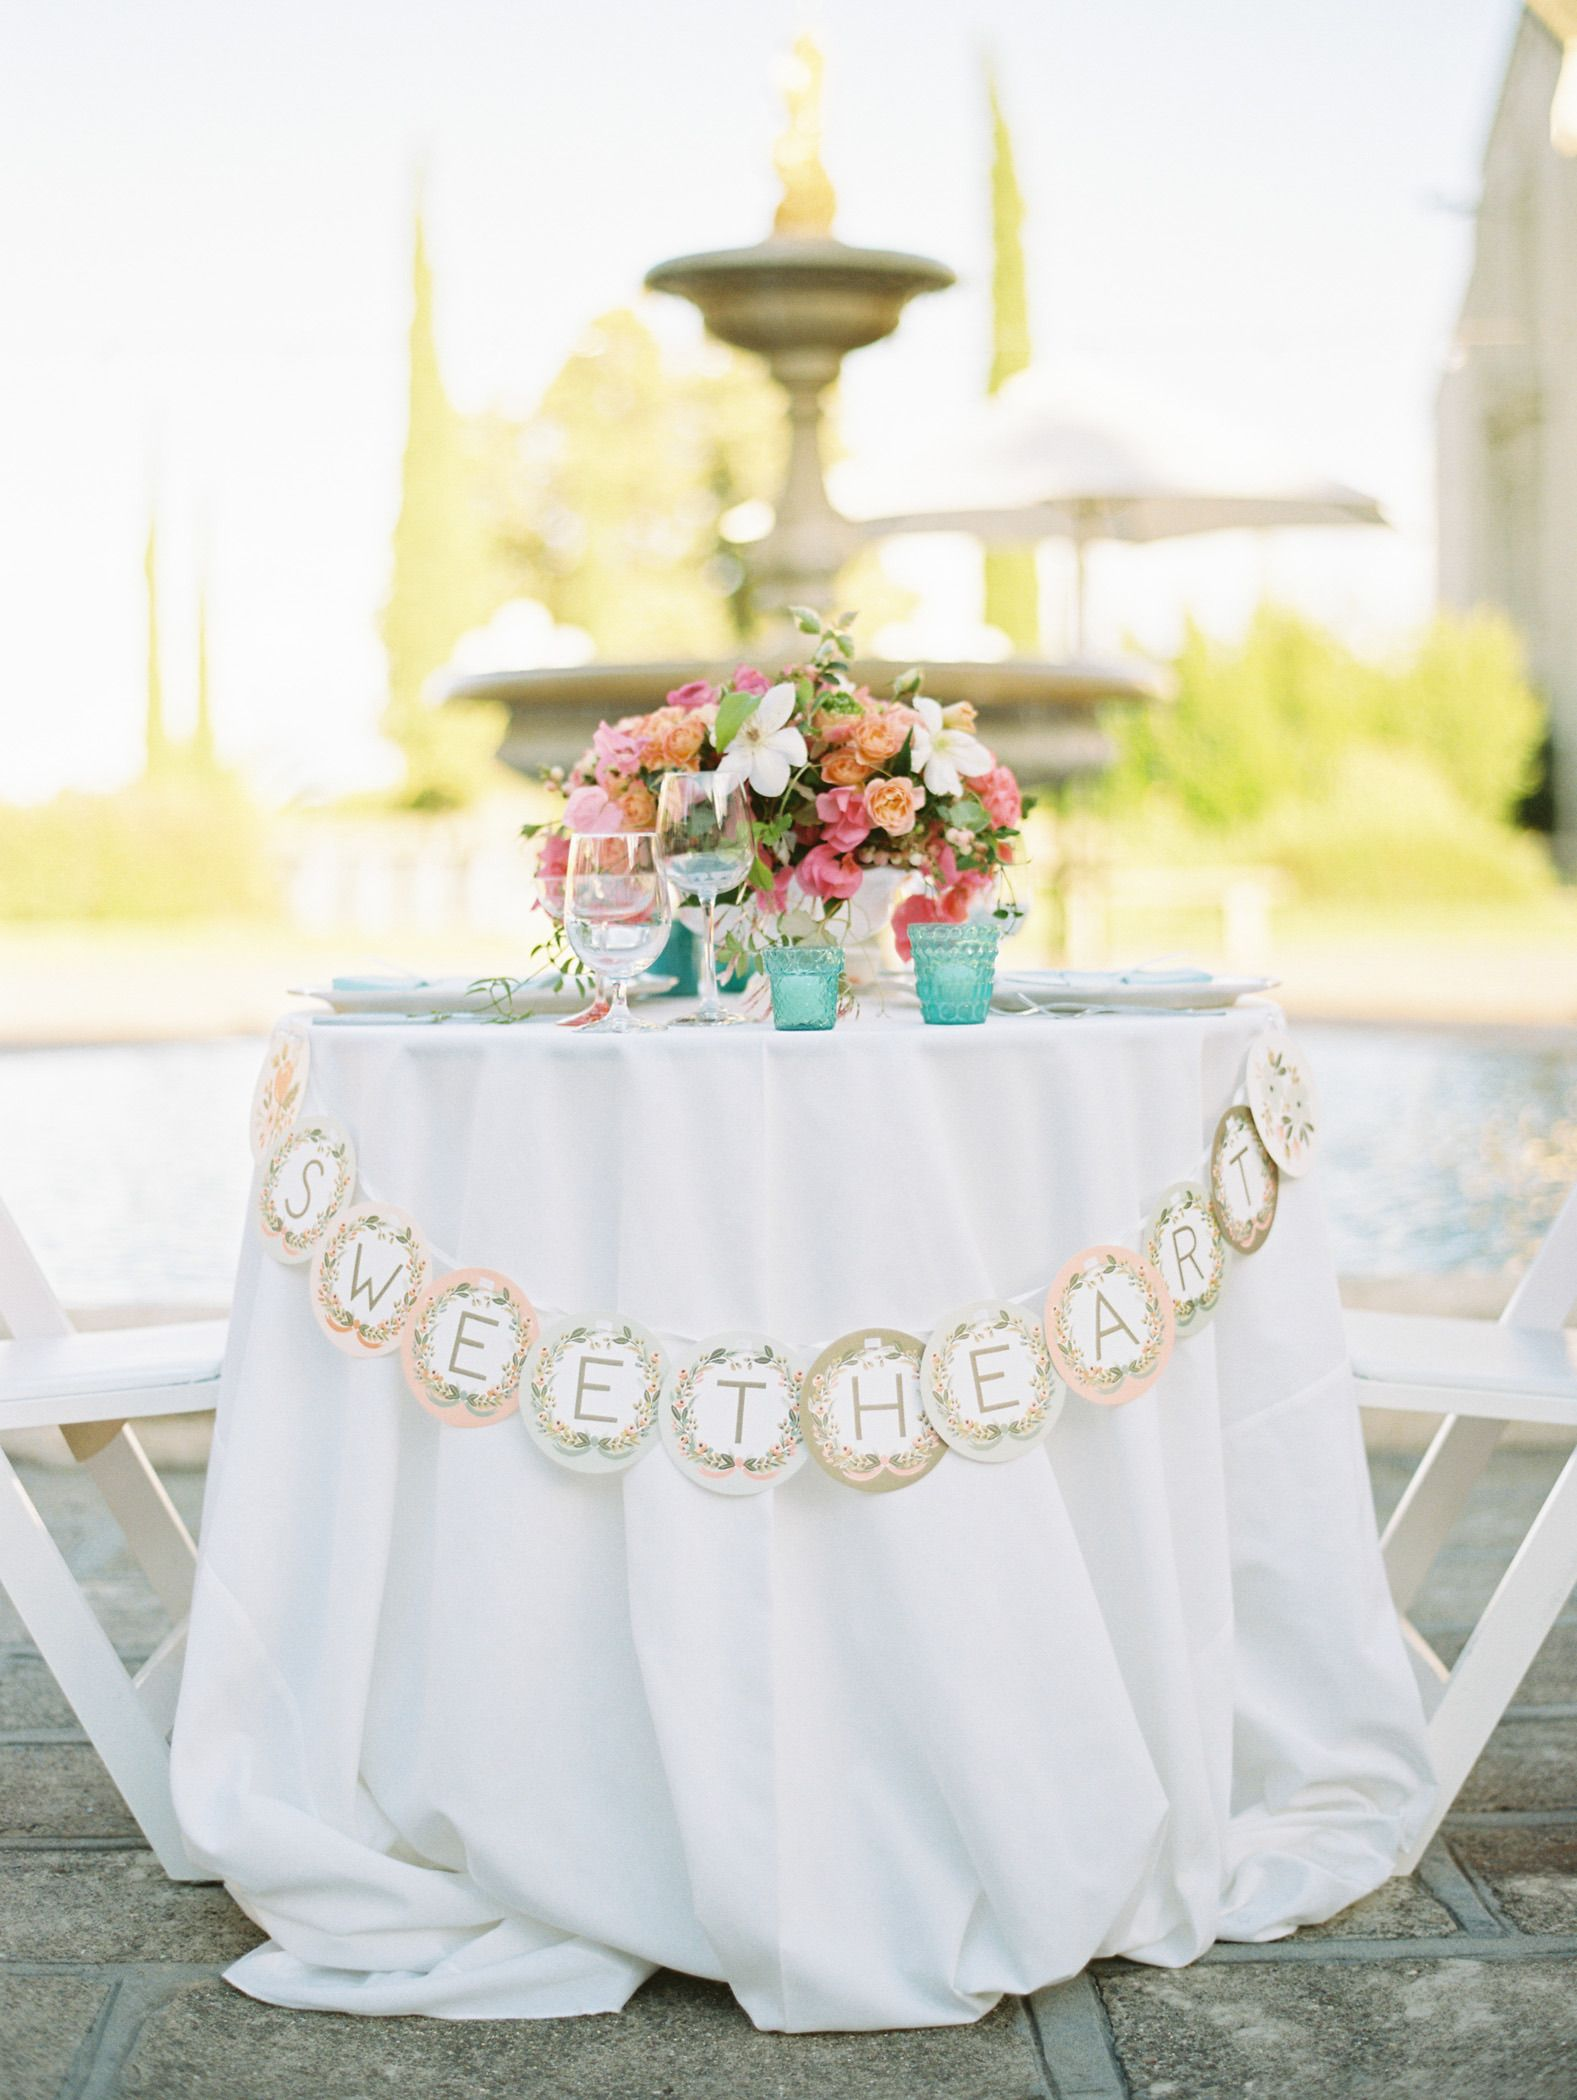 Carnival Inspired Wedding full of Color | Sweetheart table, Wedding ...